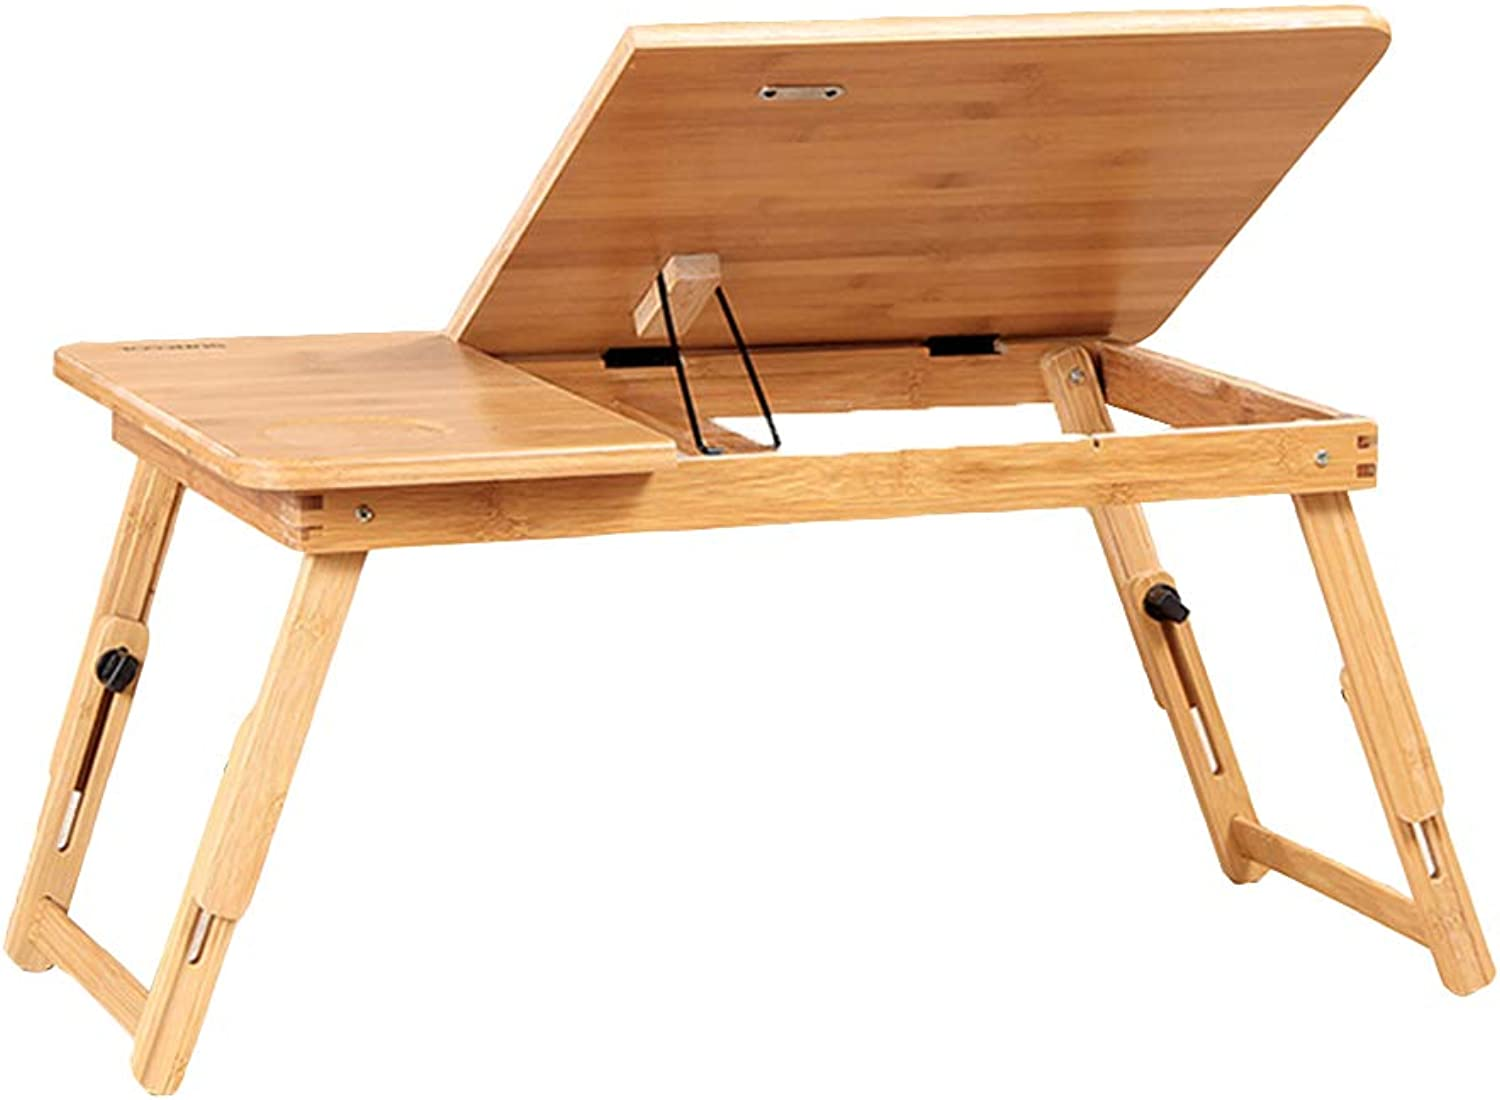 LVZAIXI Portable Folding Laptop Desk with Adjustable Height with Drawers, Multiple Size   (55  34  27cm) Without Drawers